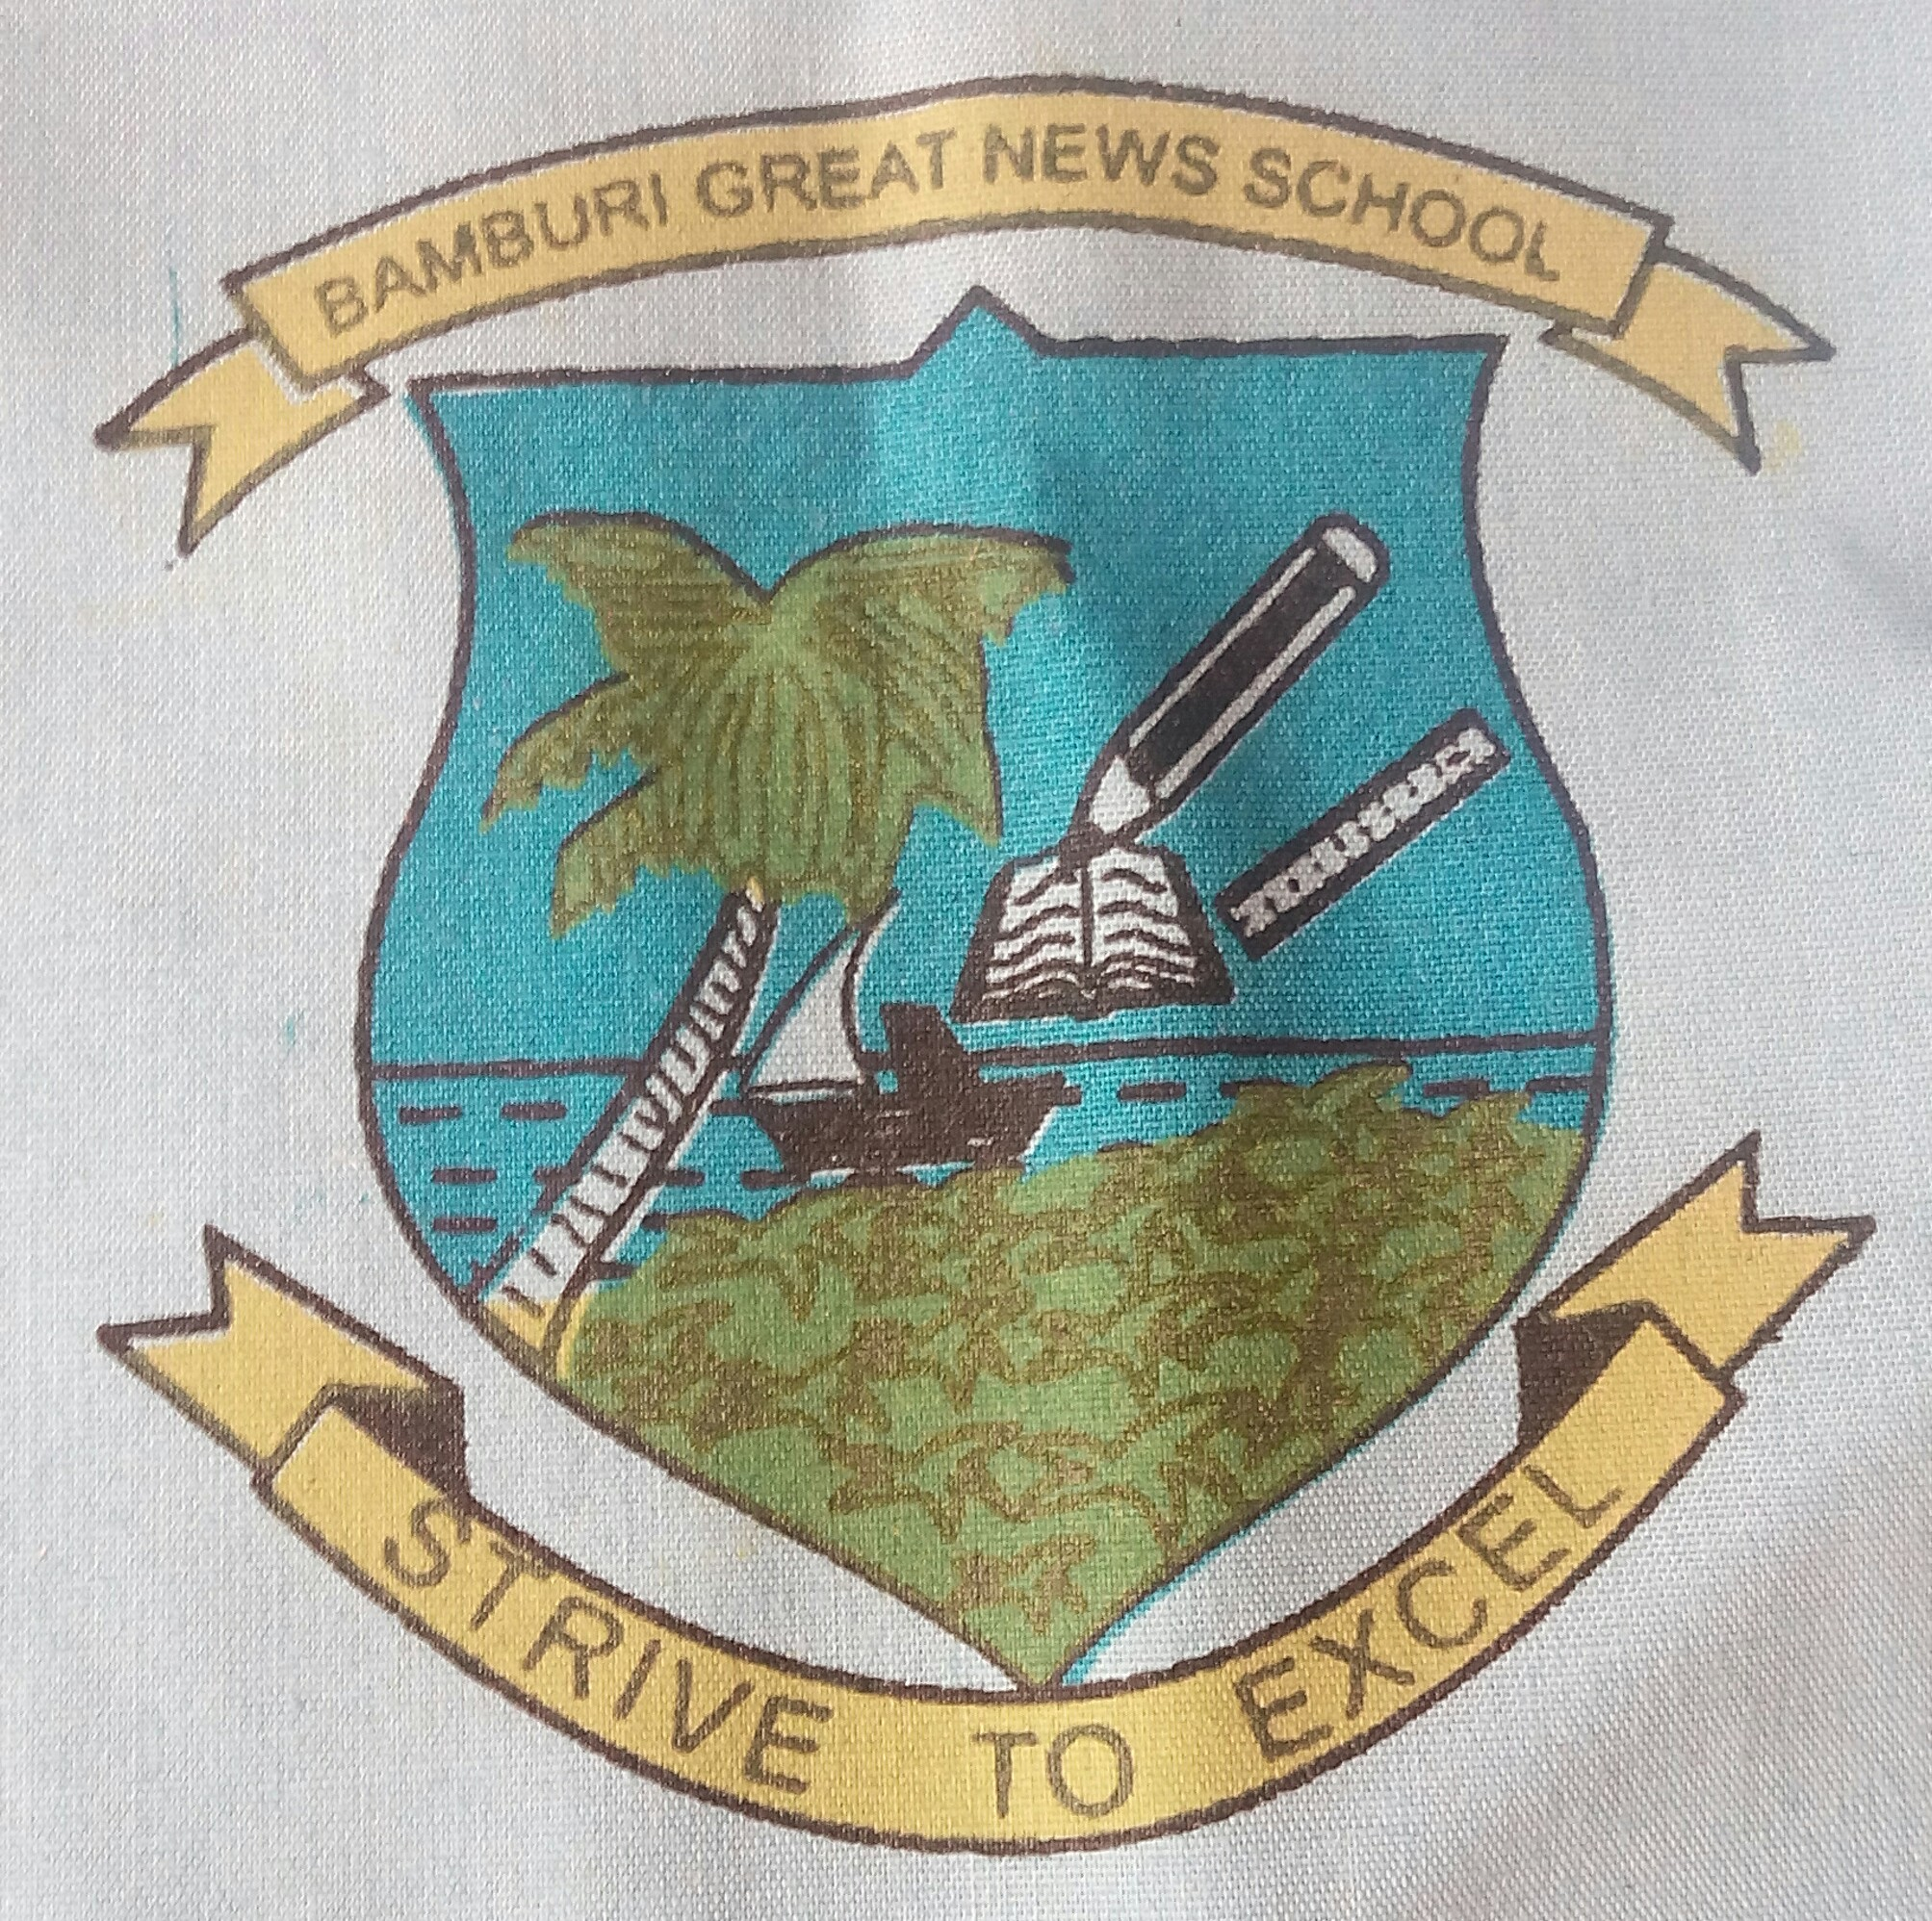 Bamburi Great News Adventist School